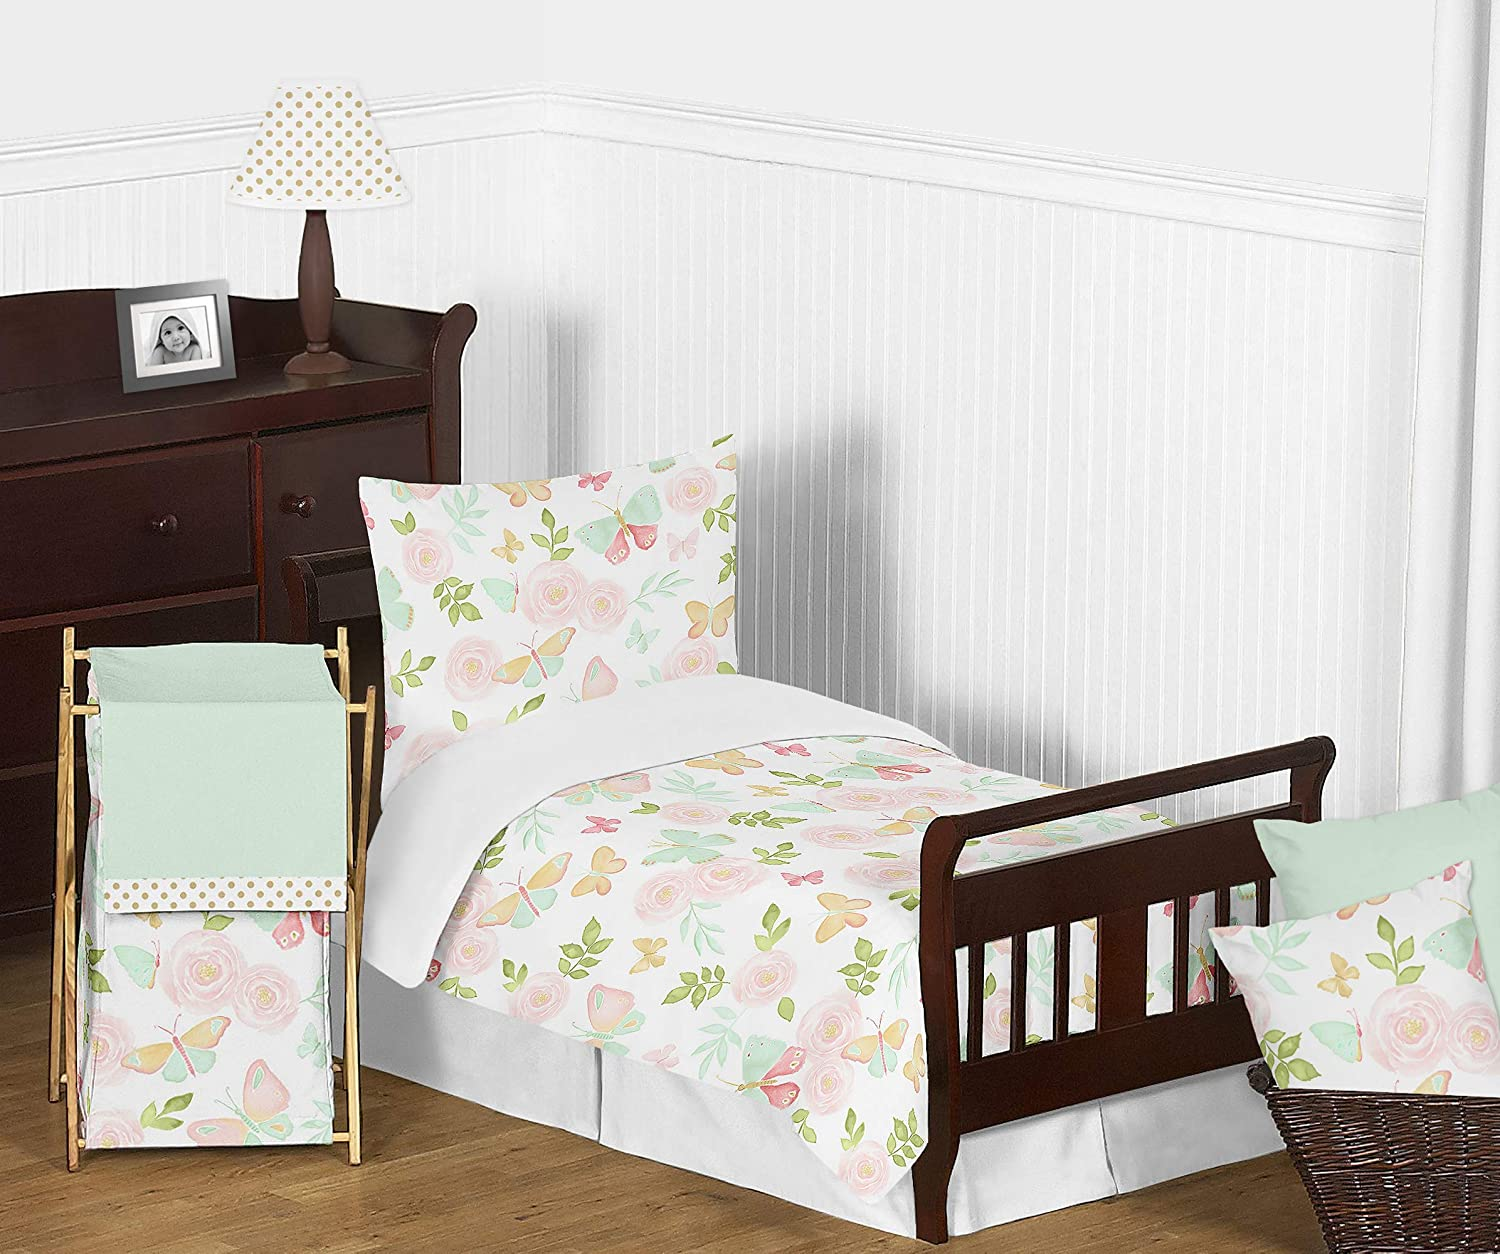 Sweet Jojo Designs Blush Pink, Mint and White Shabby Chic Butterfly Floral Girl Toddler Kid Childrens Bedding Set - 5 Pieces Comforter, Sham and Sheets - Watercolor Rose